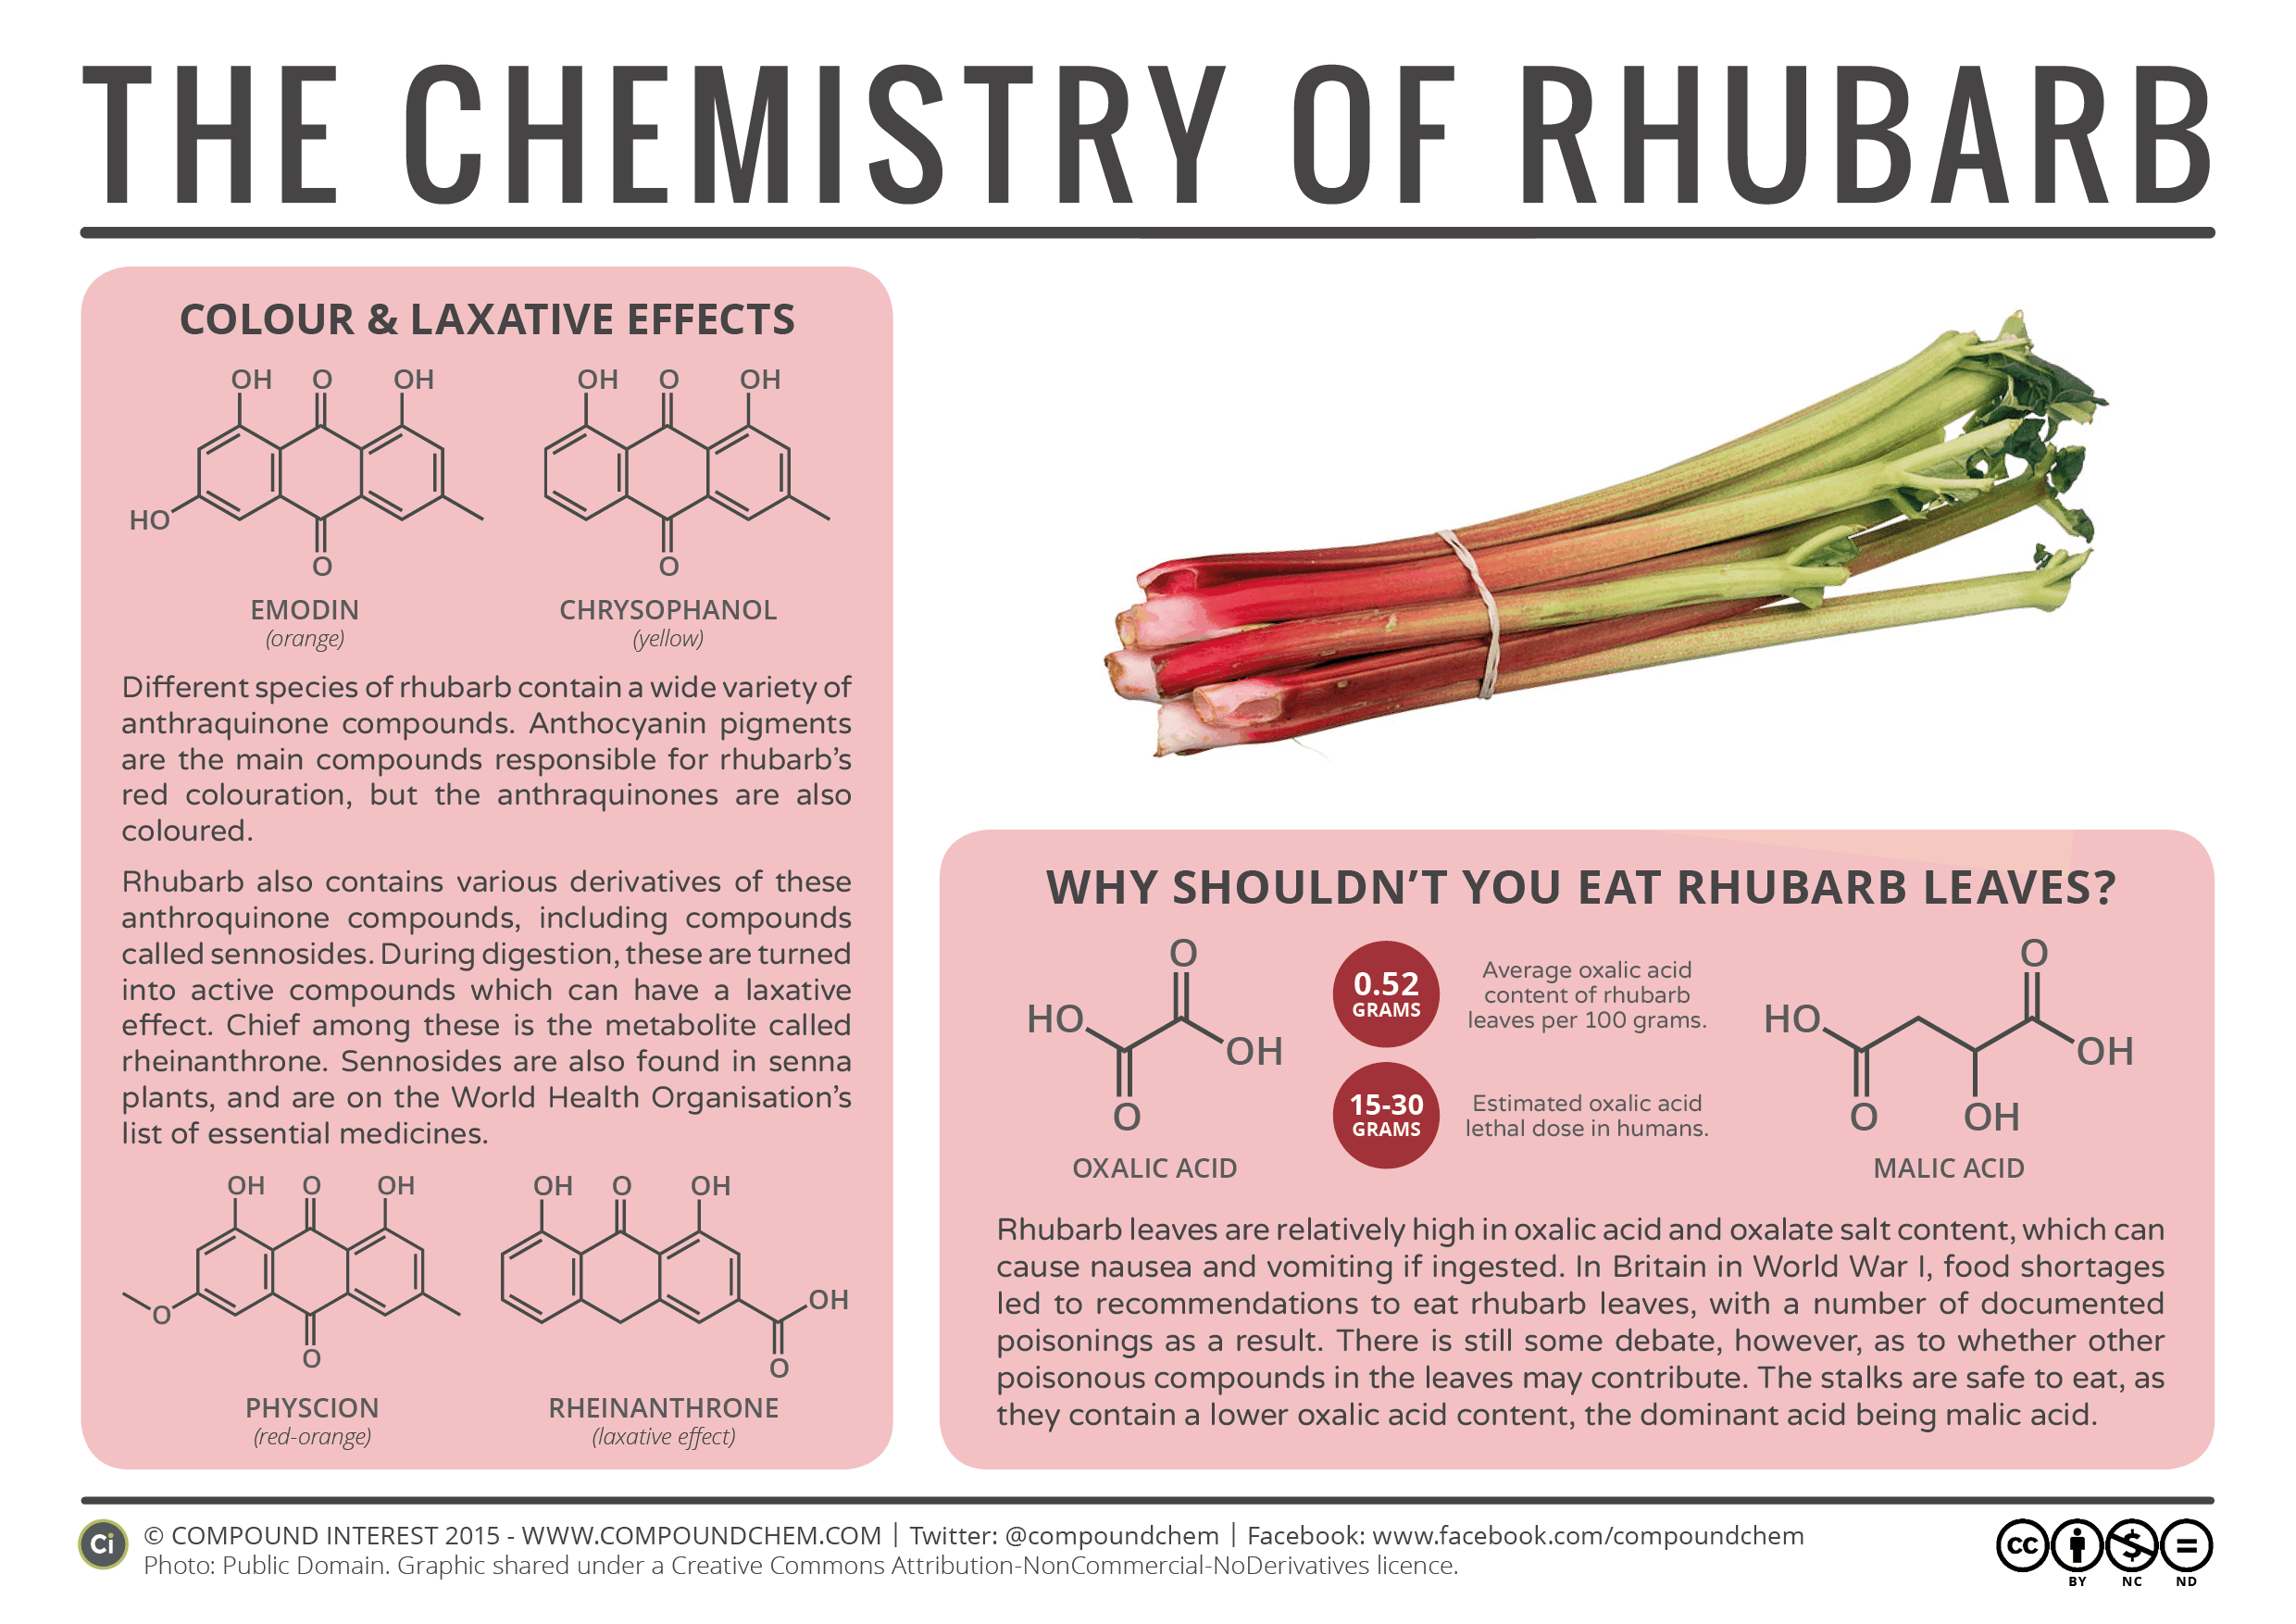 The Chemistry of Rhubarb Infographic by CompoundChem.com